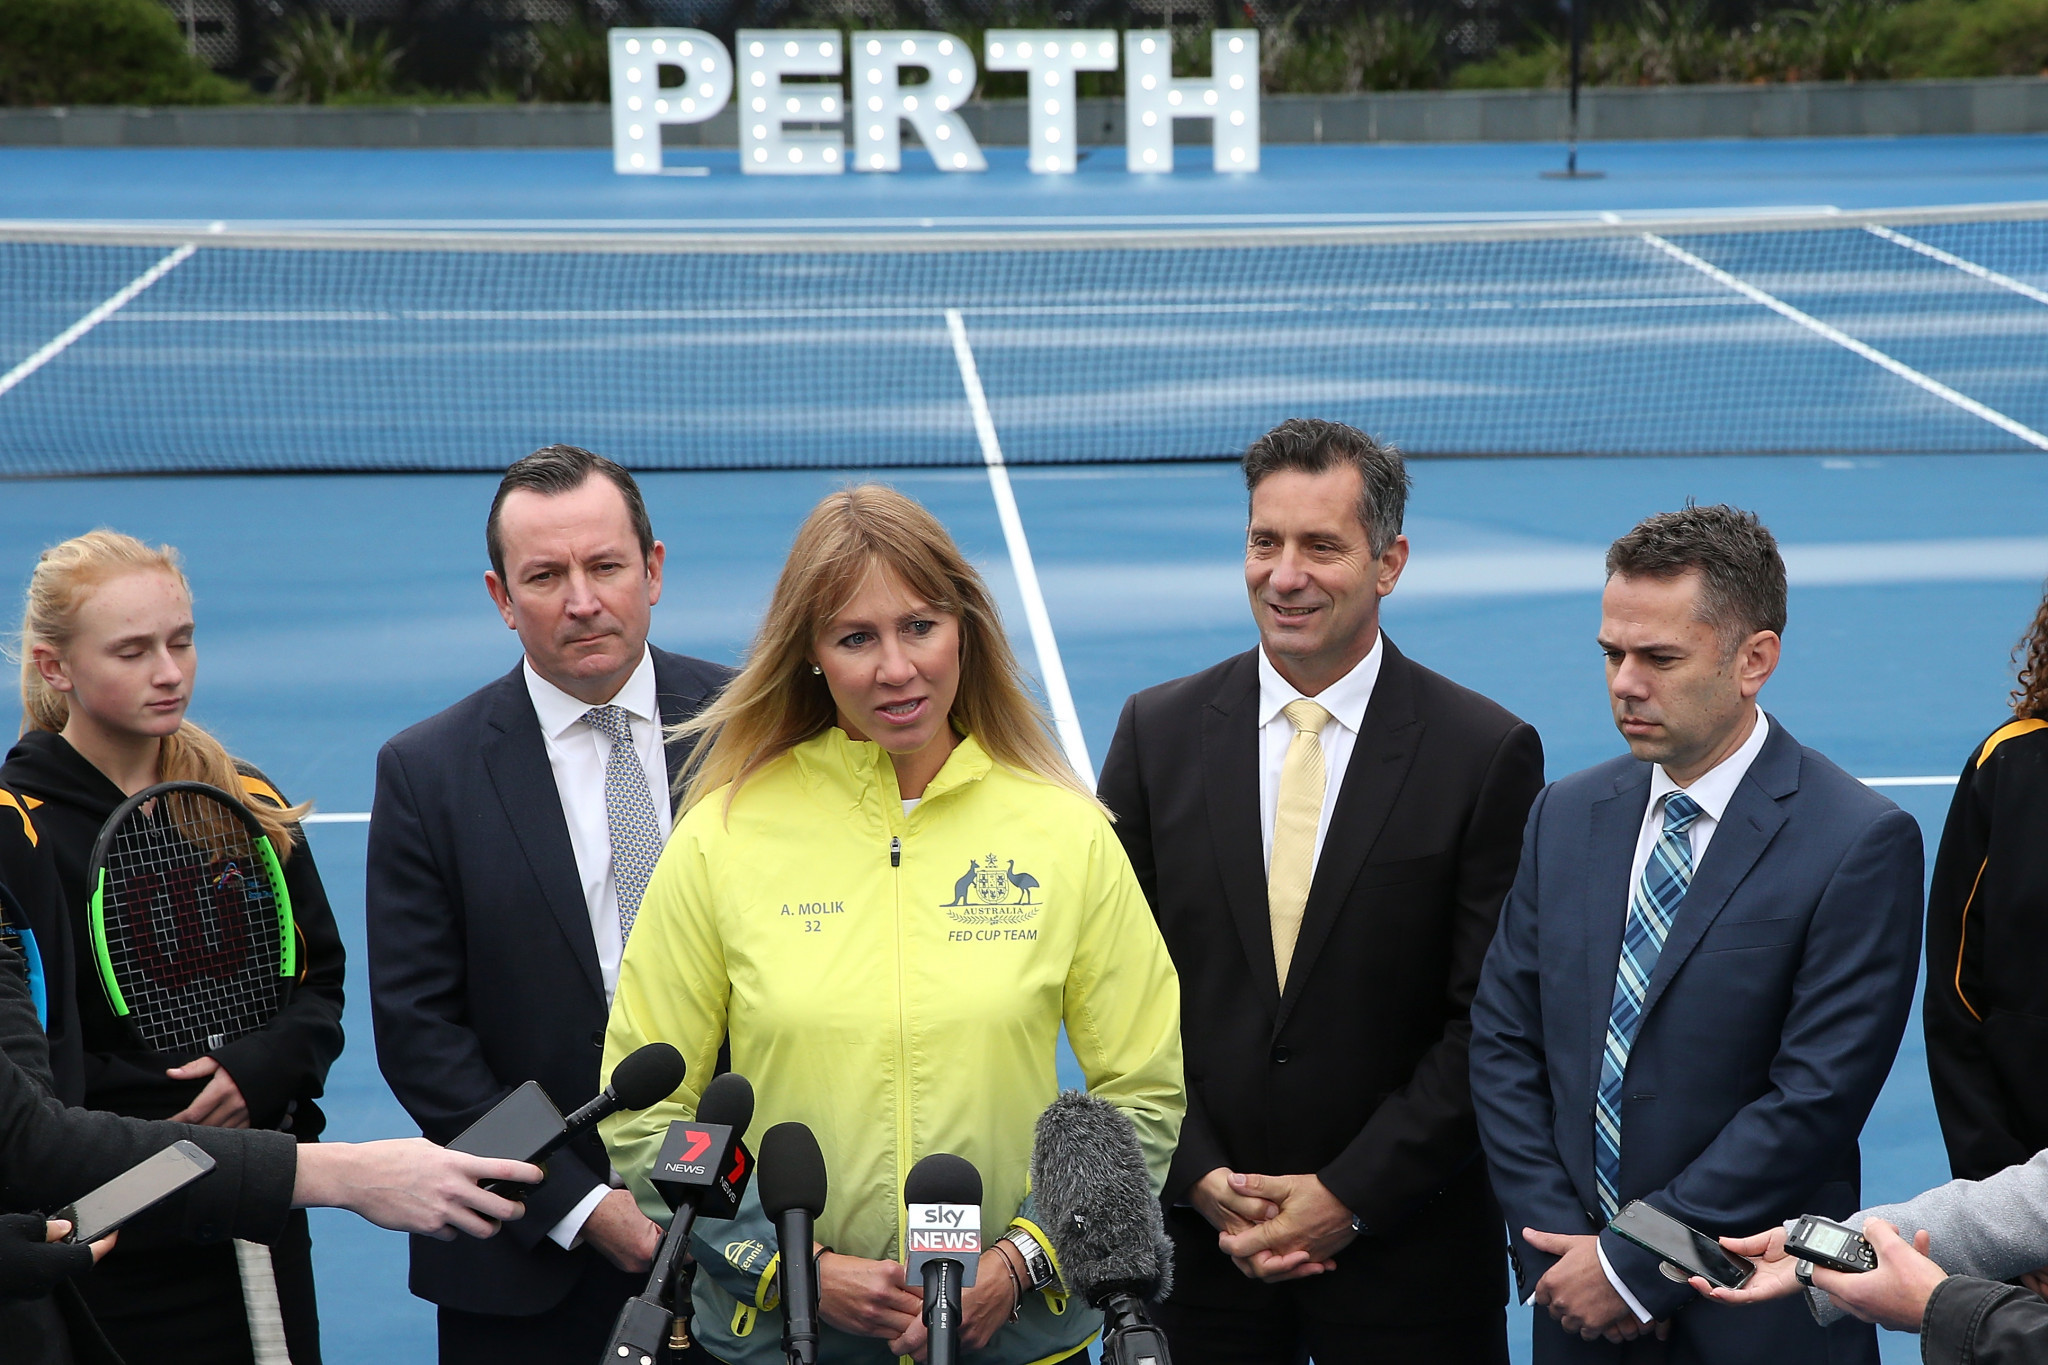 Perth named as host of Fed Cup final